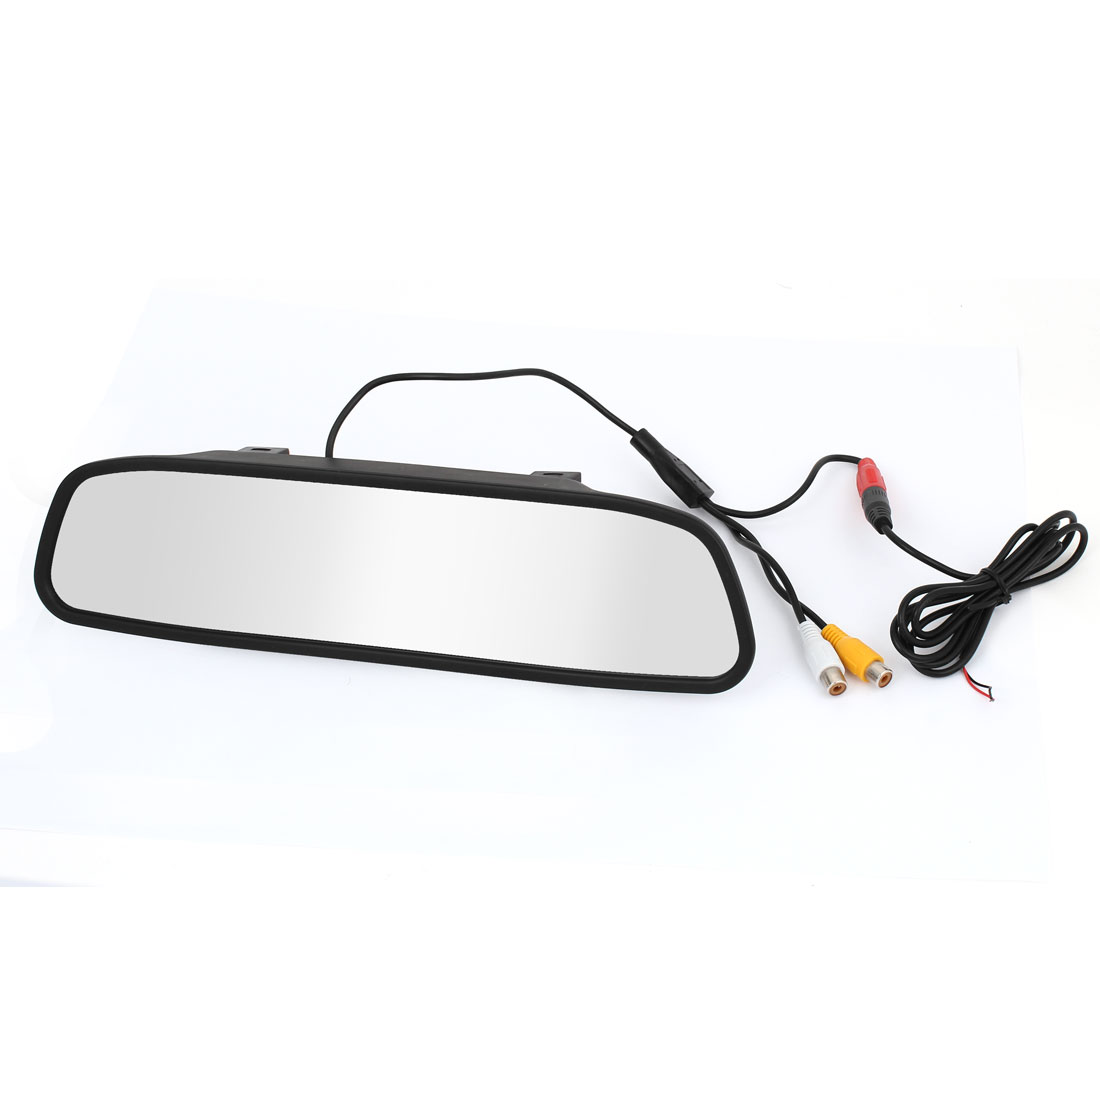 "4.3"" Screen 2 x AV Input TFT Car LCD Rear View Rearview DVD Mirror Monitor"